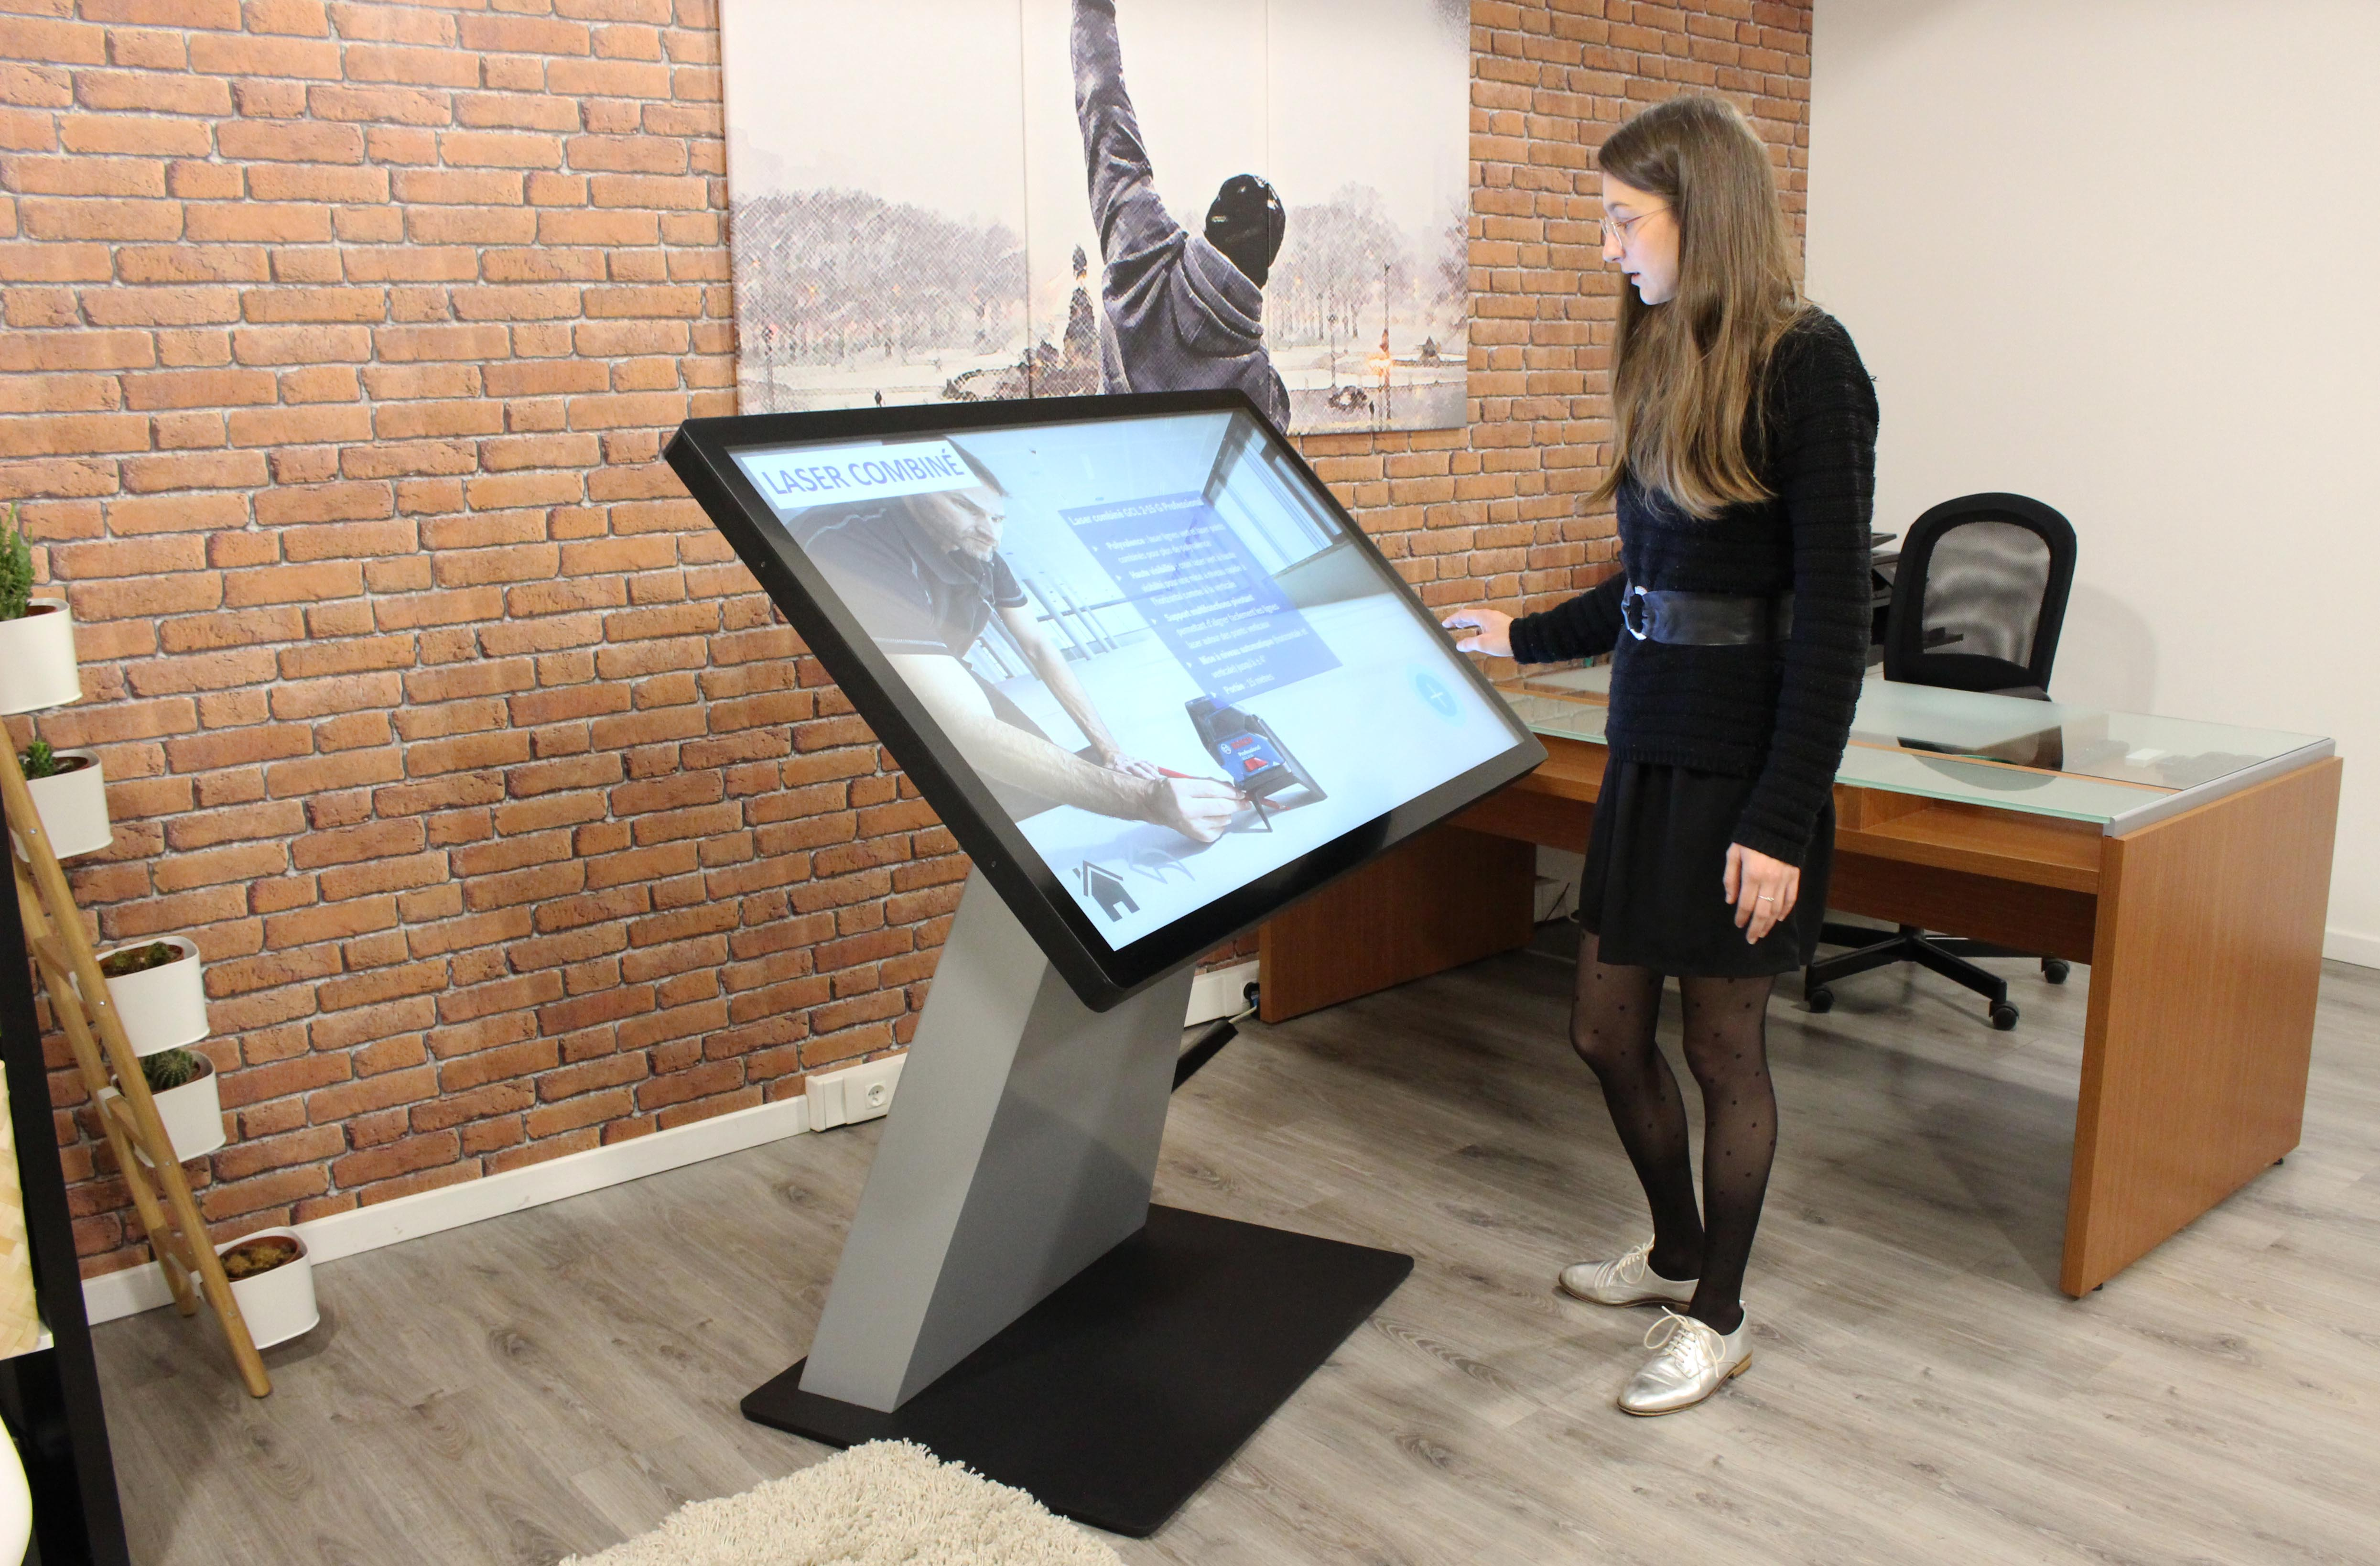 Borne digitale multitouch 46 pouces